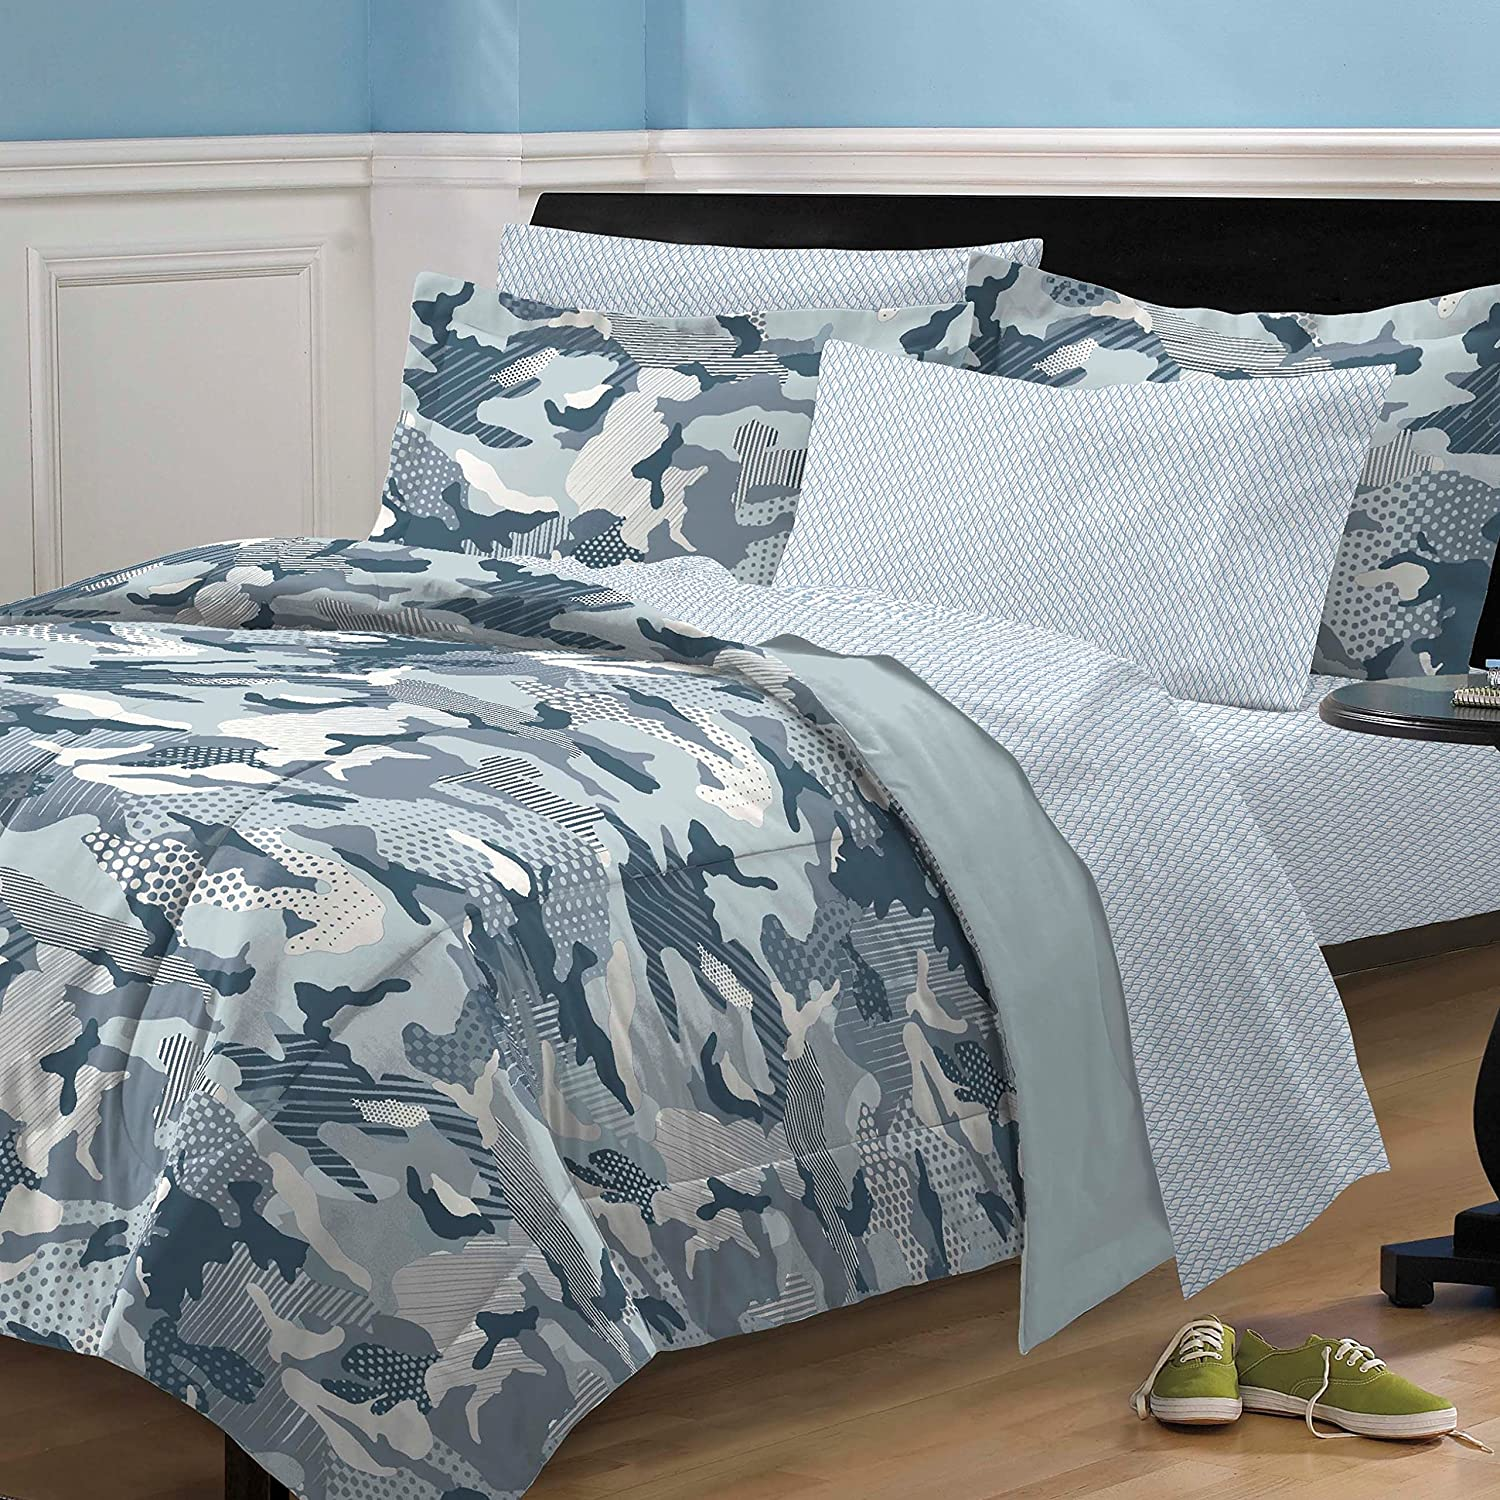 My Room Geo Camo Camouflage Comforter Set, Blue, Full